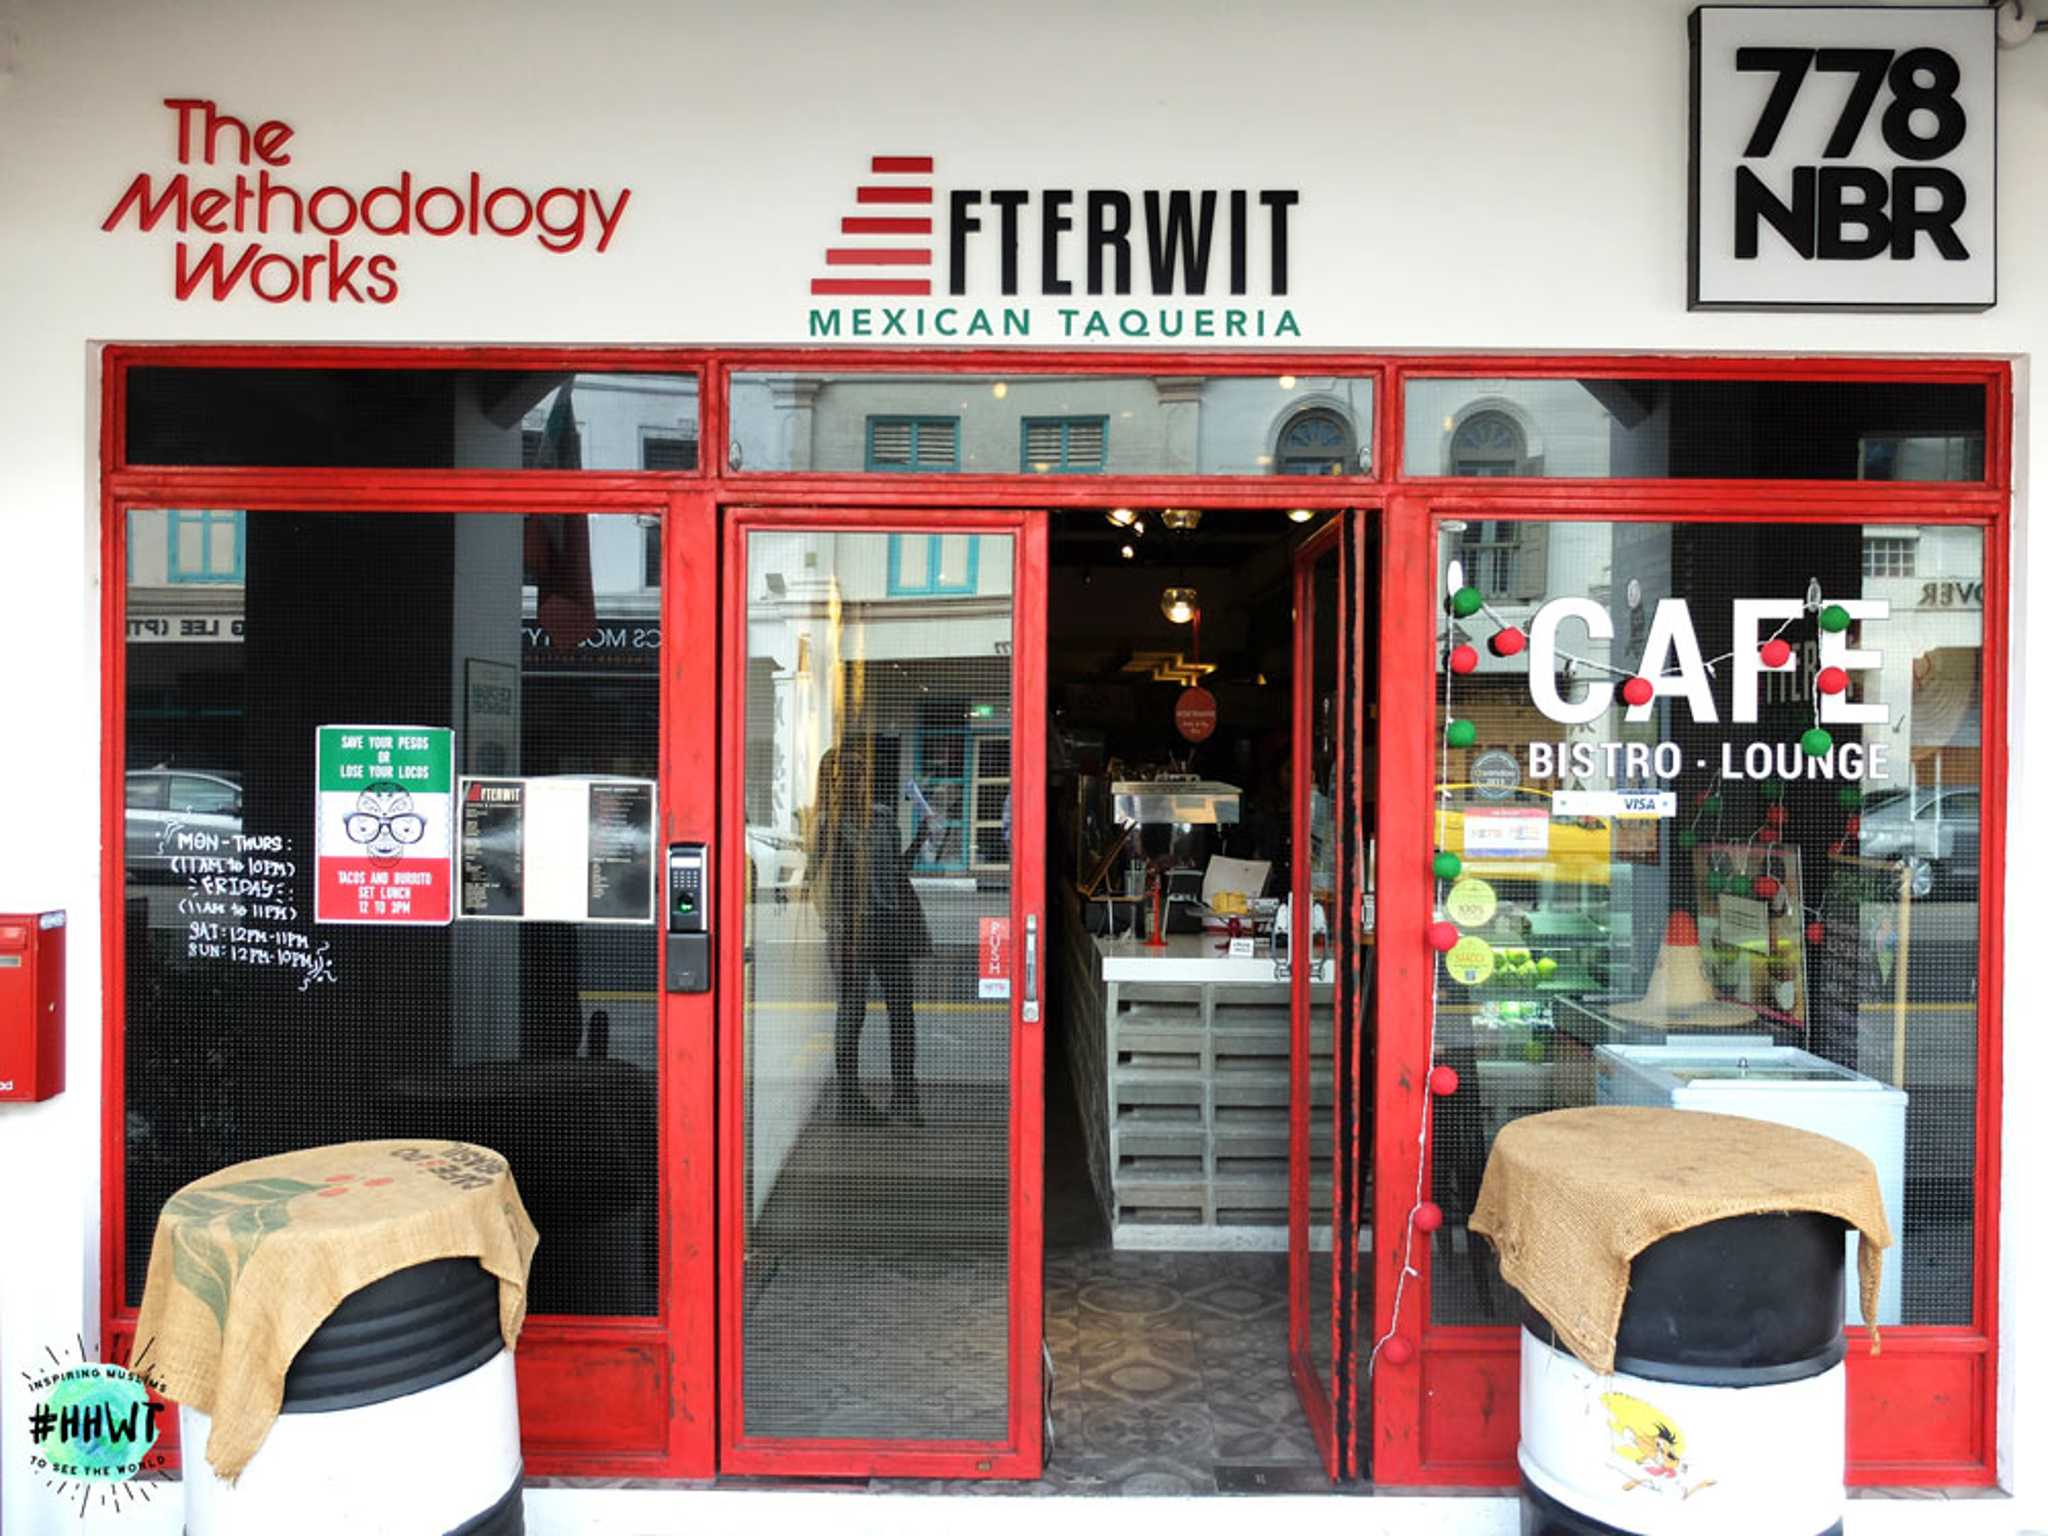 afterwit-cafe-halal-mexican-singapore